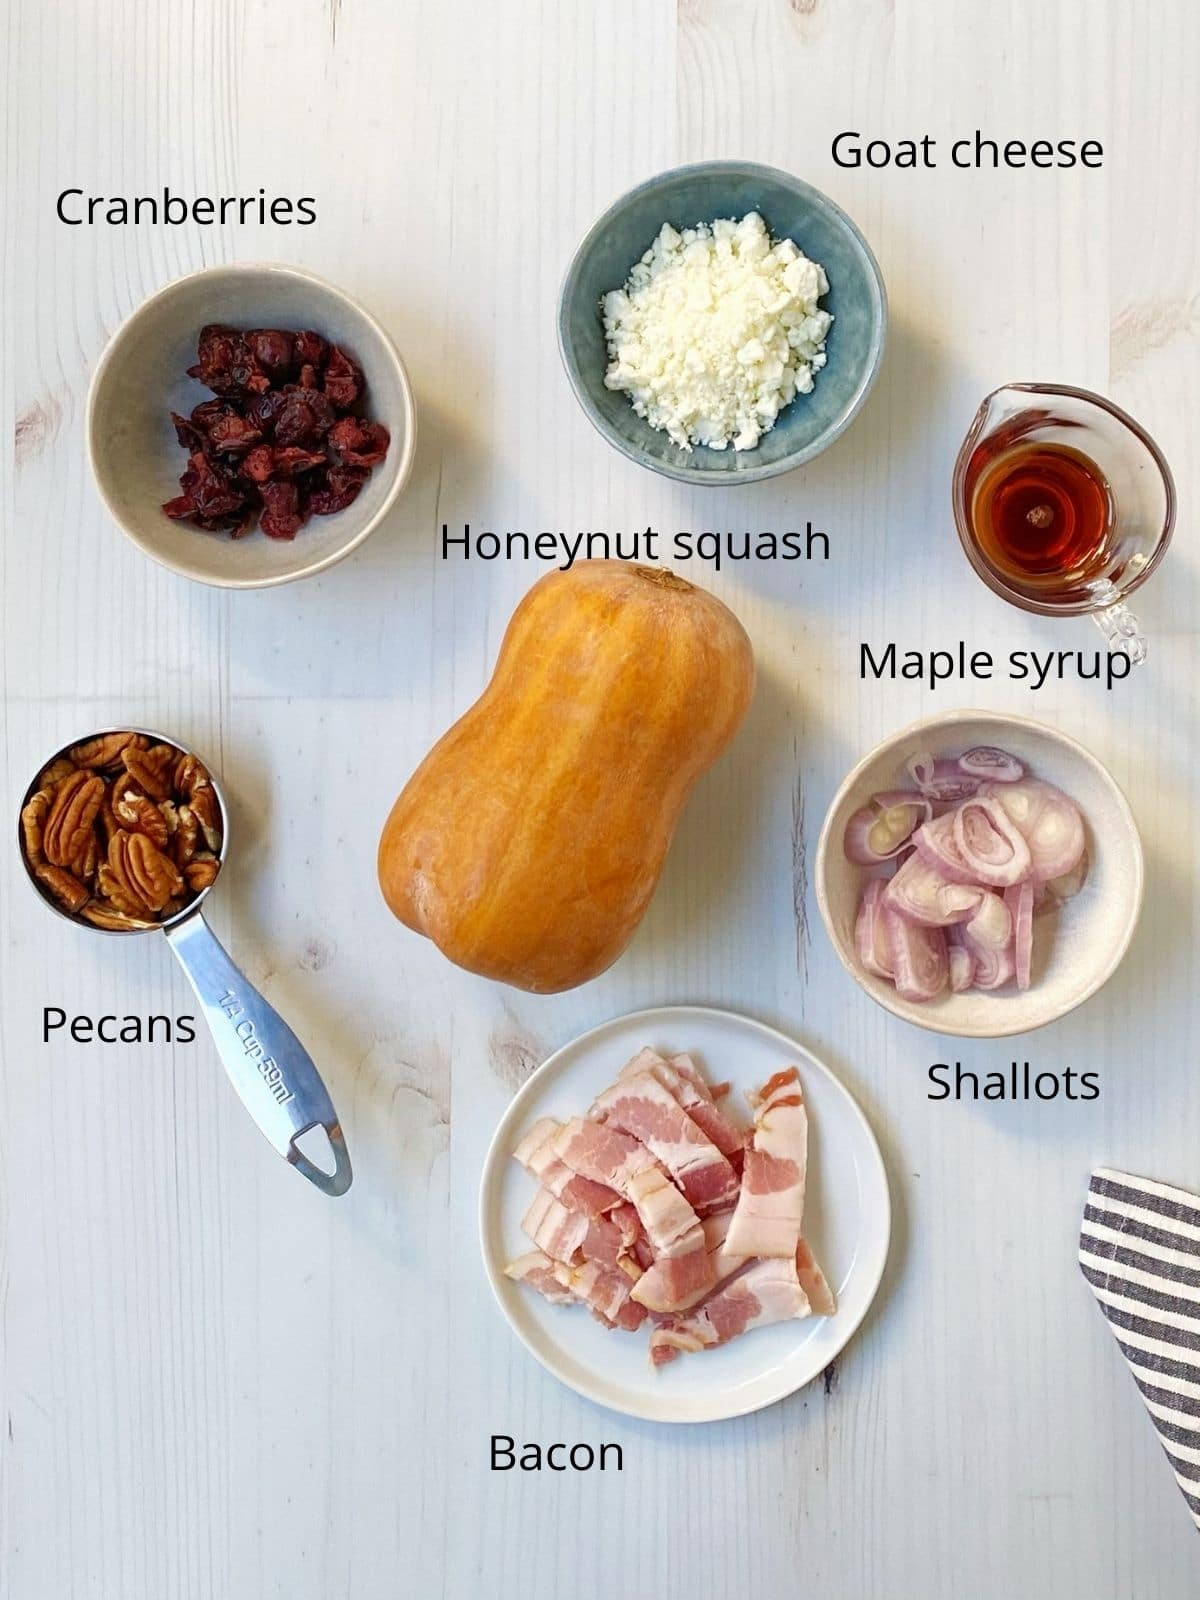 components - cranberries, bacon, pecans, goat cheese, shallots, maple syrup